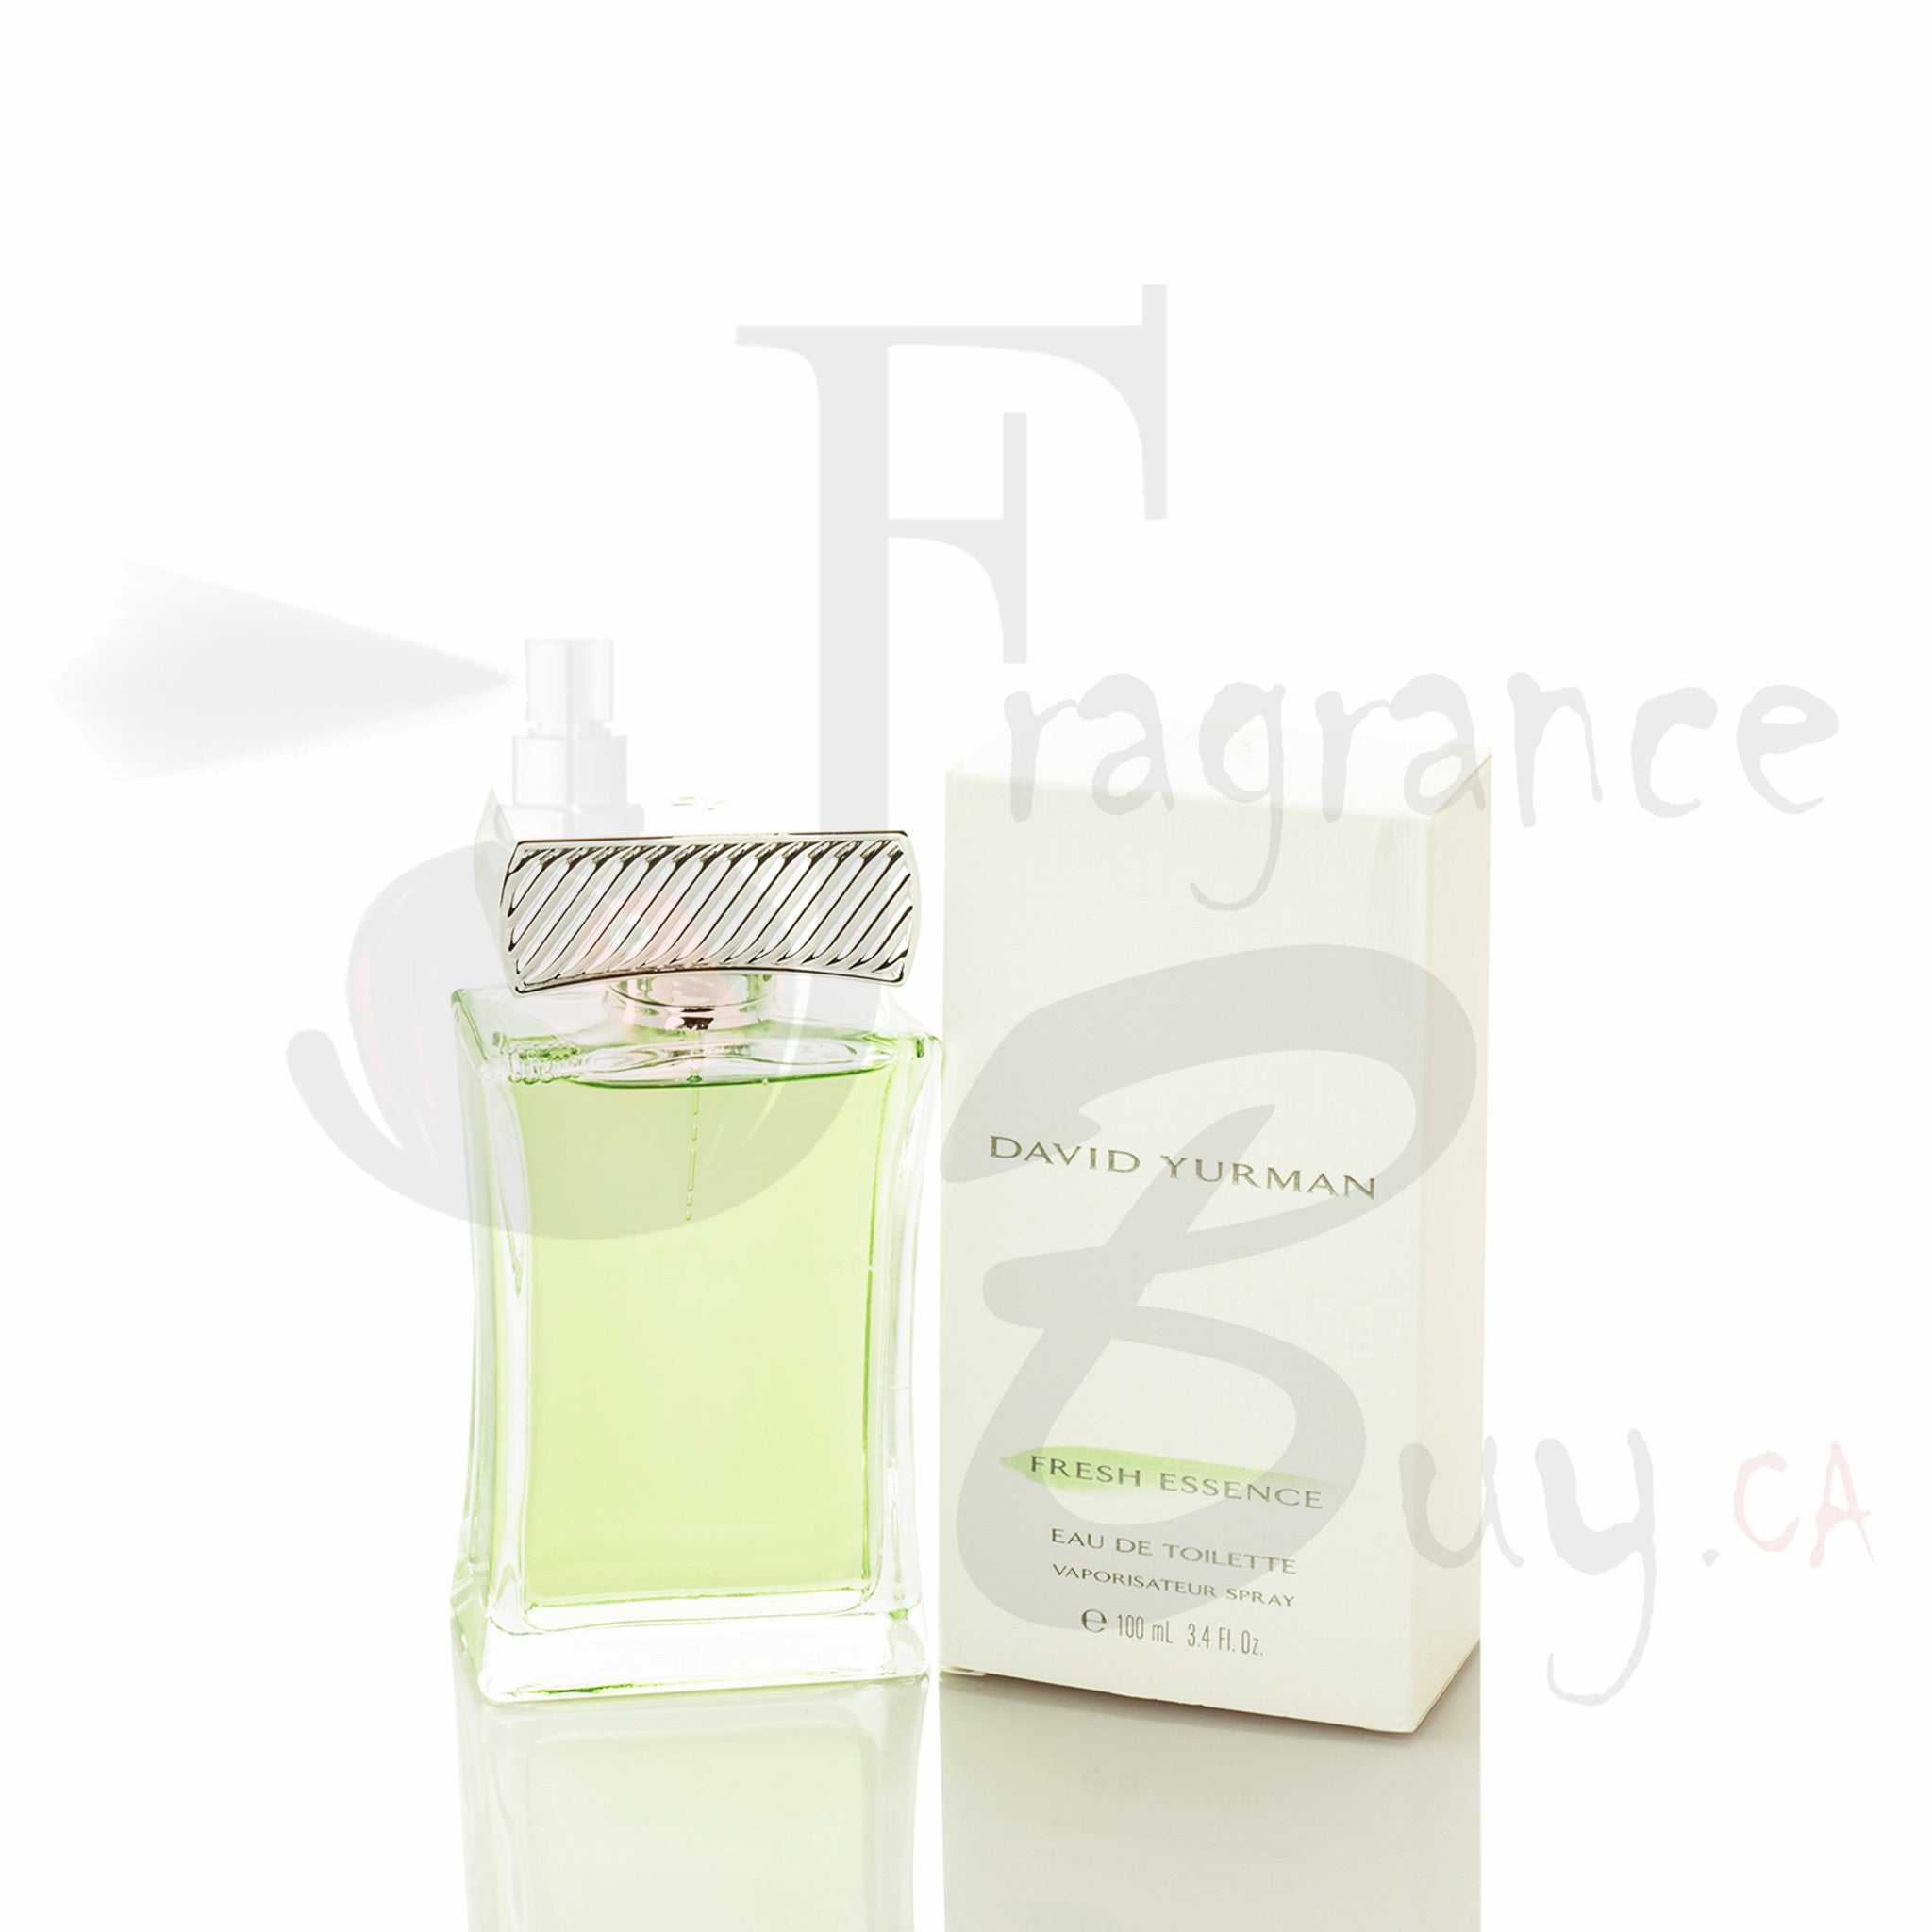 David Yurman Fresh Essence Cologne Man